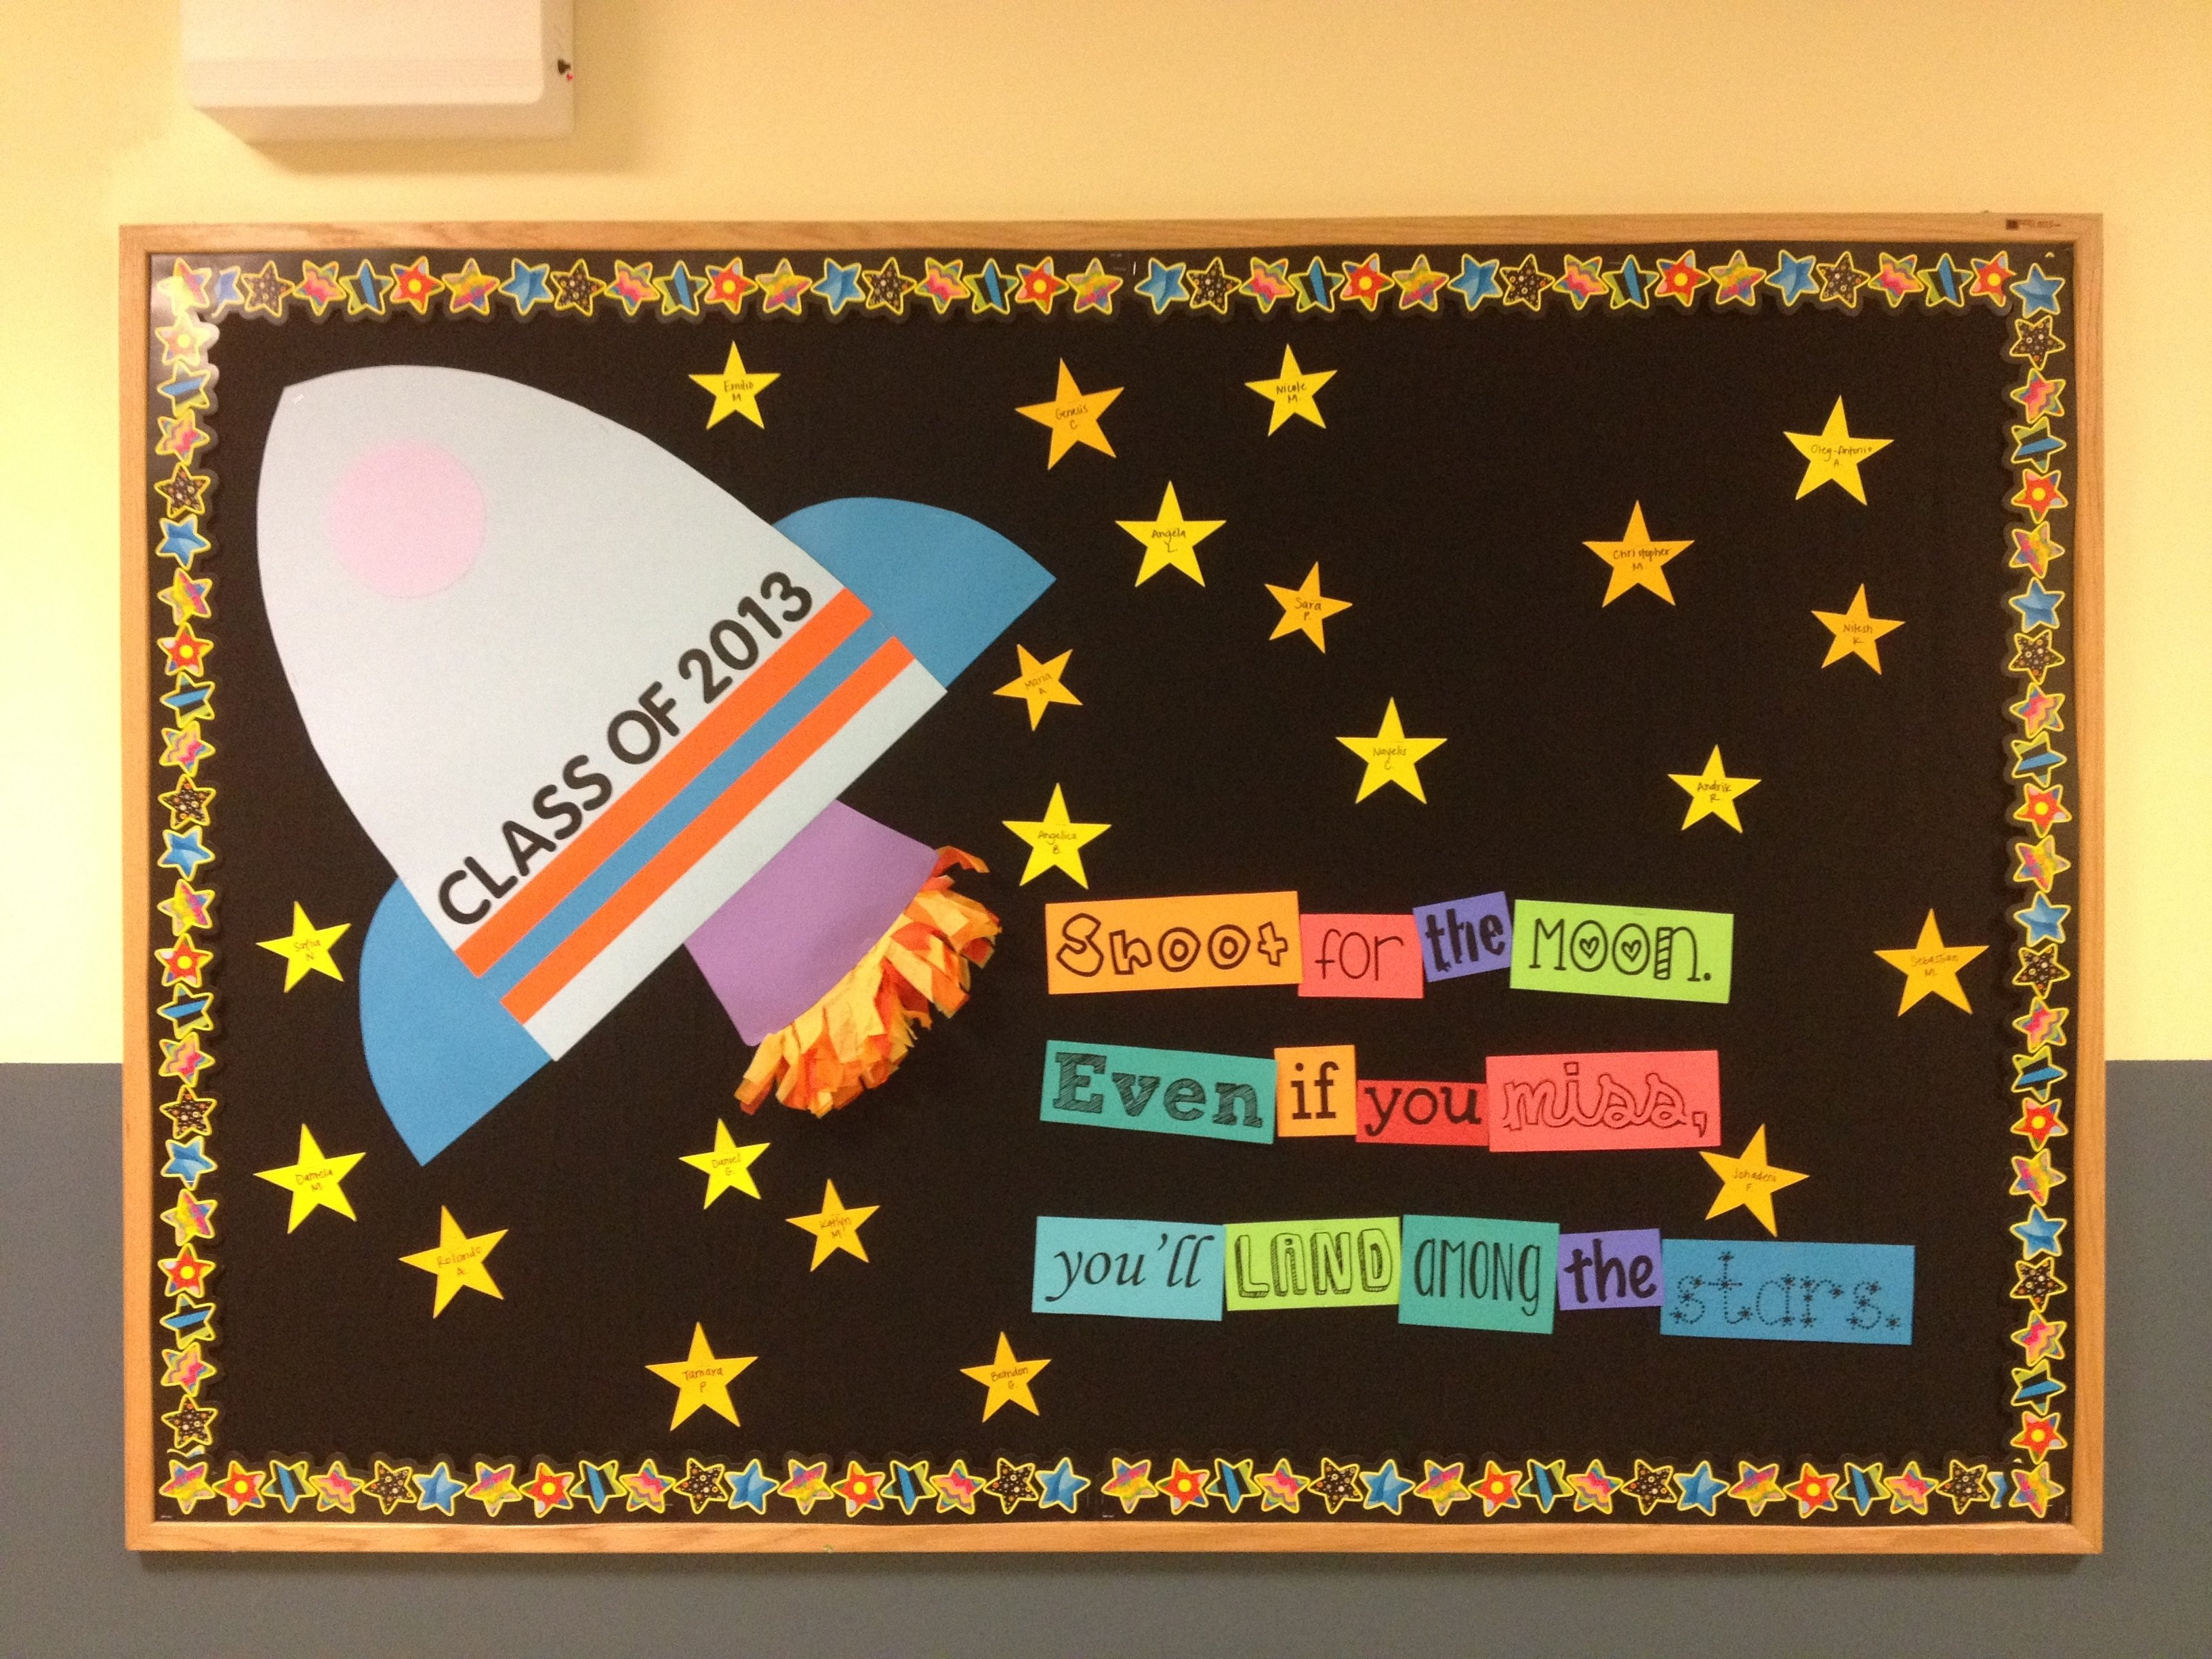 10 Amazing Fifth Grade Bulletin Board Ideas shoot for the moon bulletin board 5th grade back to school 5 2020